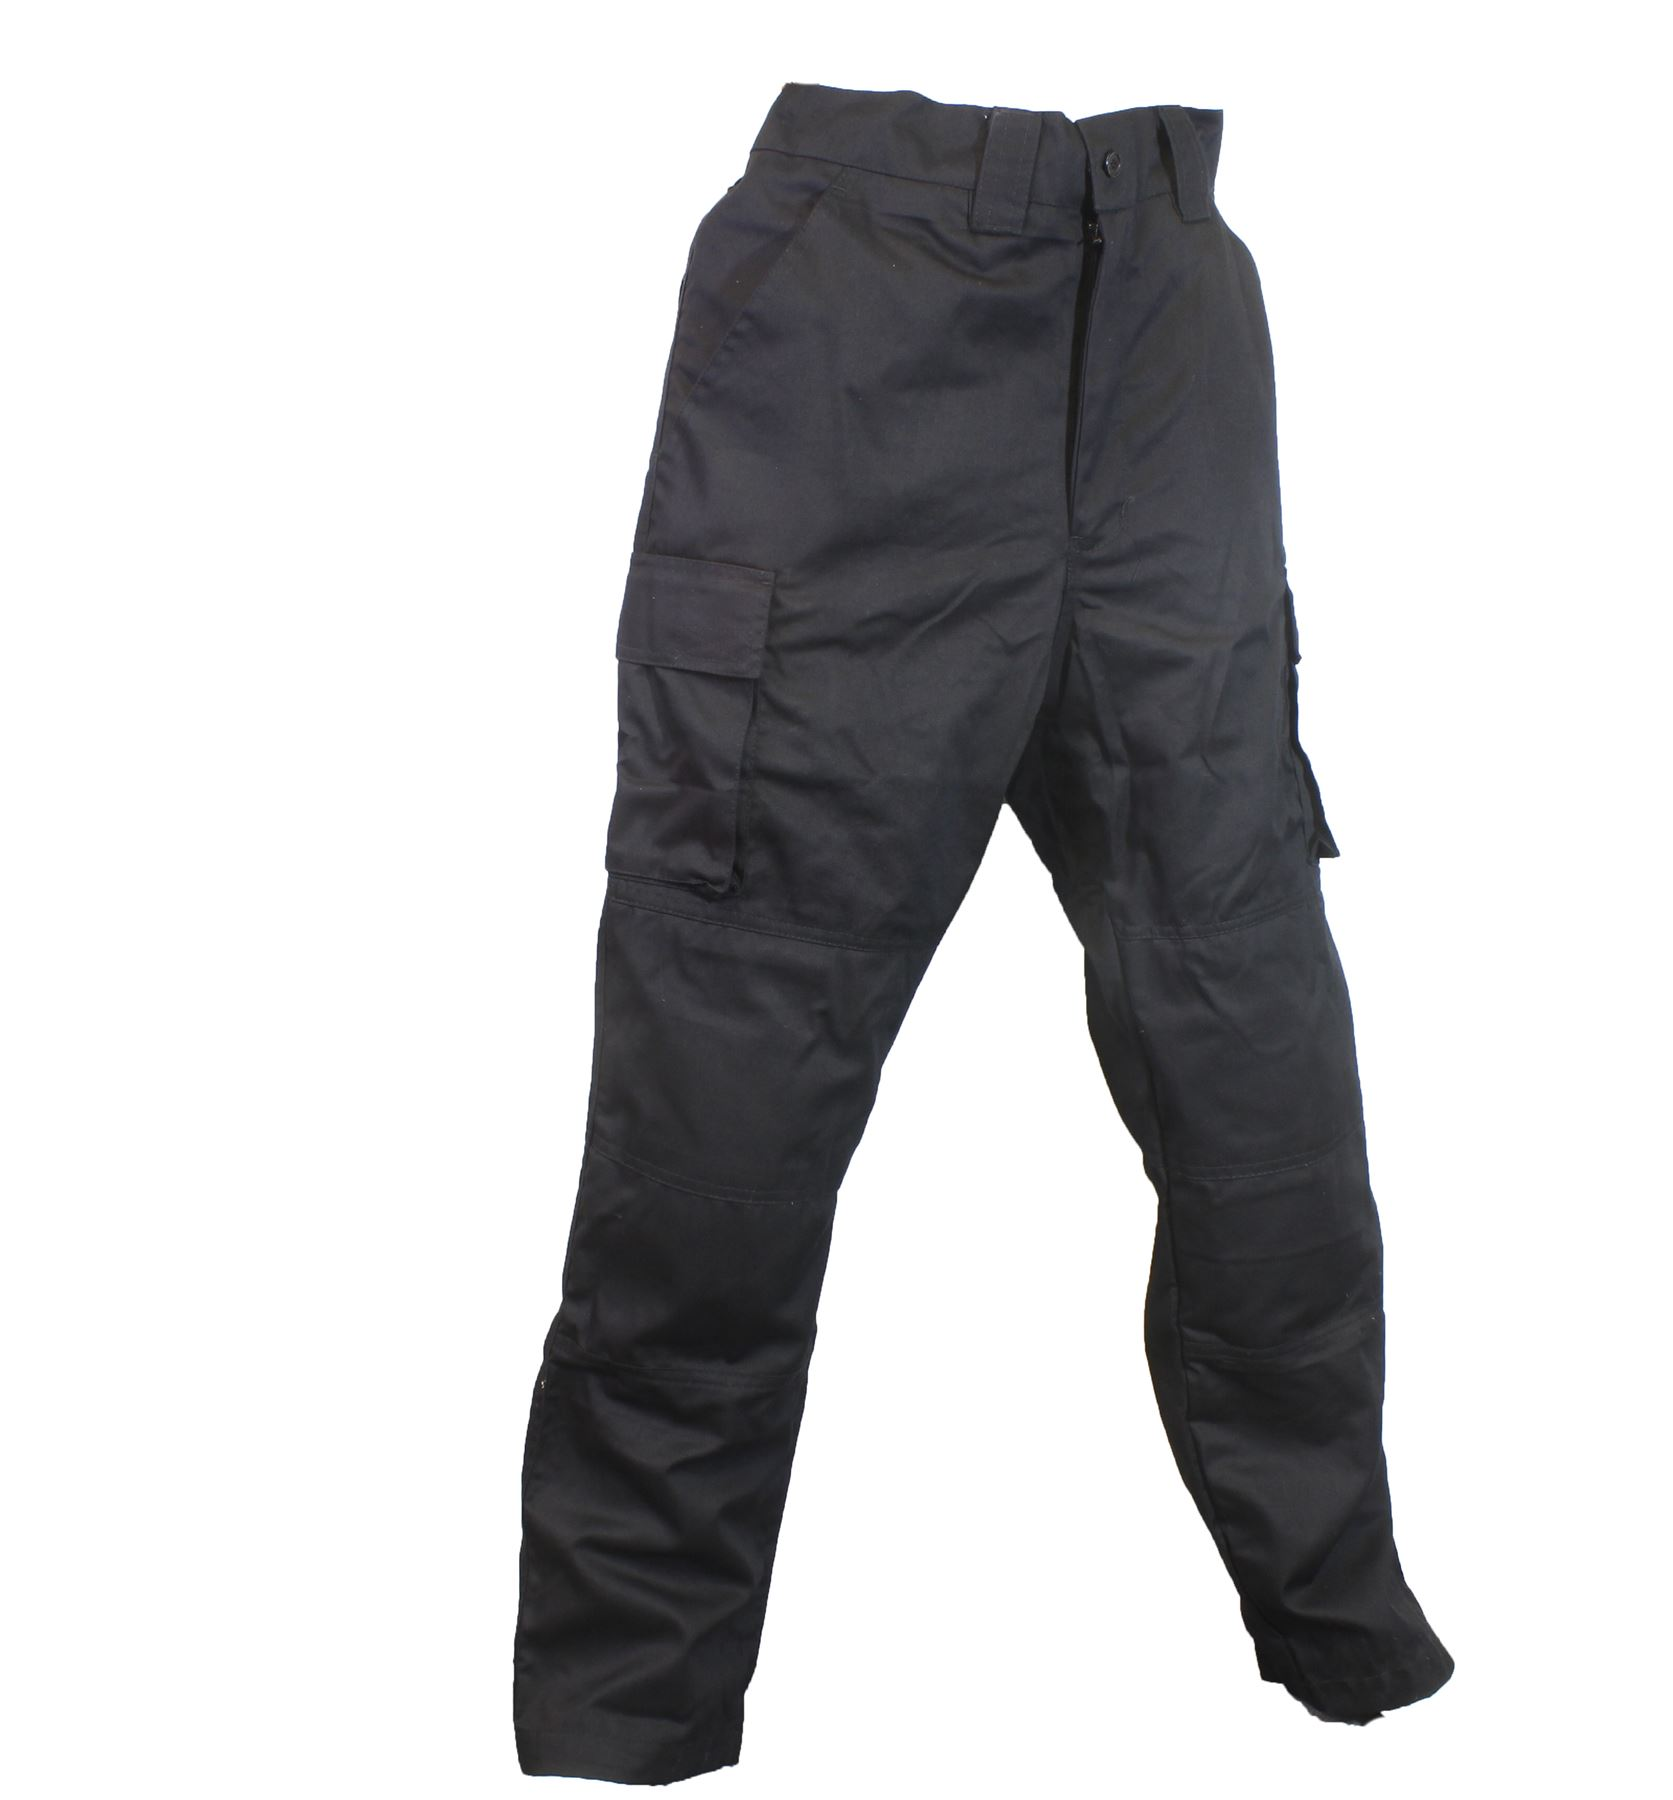 Motorcycle-CARGO-Pants-Trousers-Jeans-with-Protective-Knee-amp-Hip-Padding